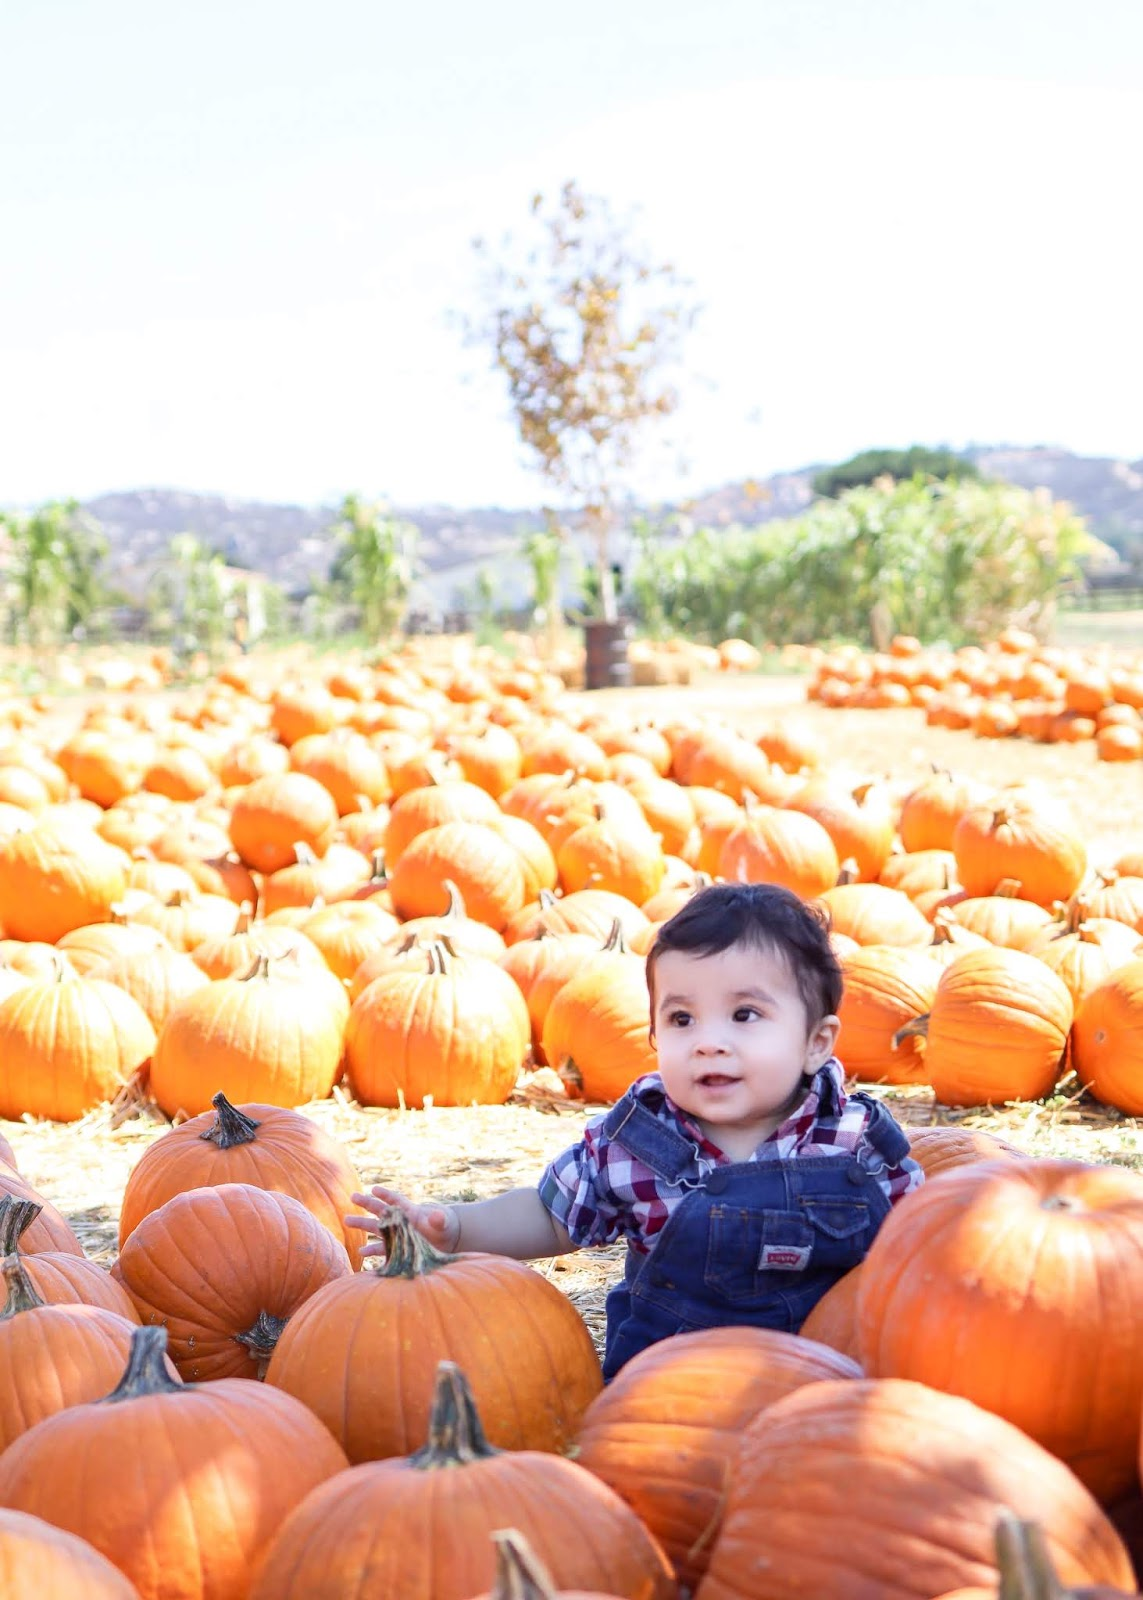 Bates Nut Farm Pumpkin Patch Baby Boy Pic, Pumpkin Patch Baby Boy Pic